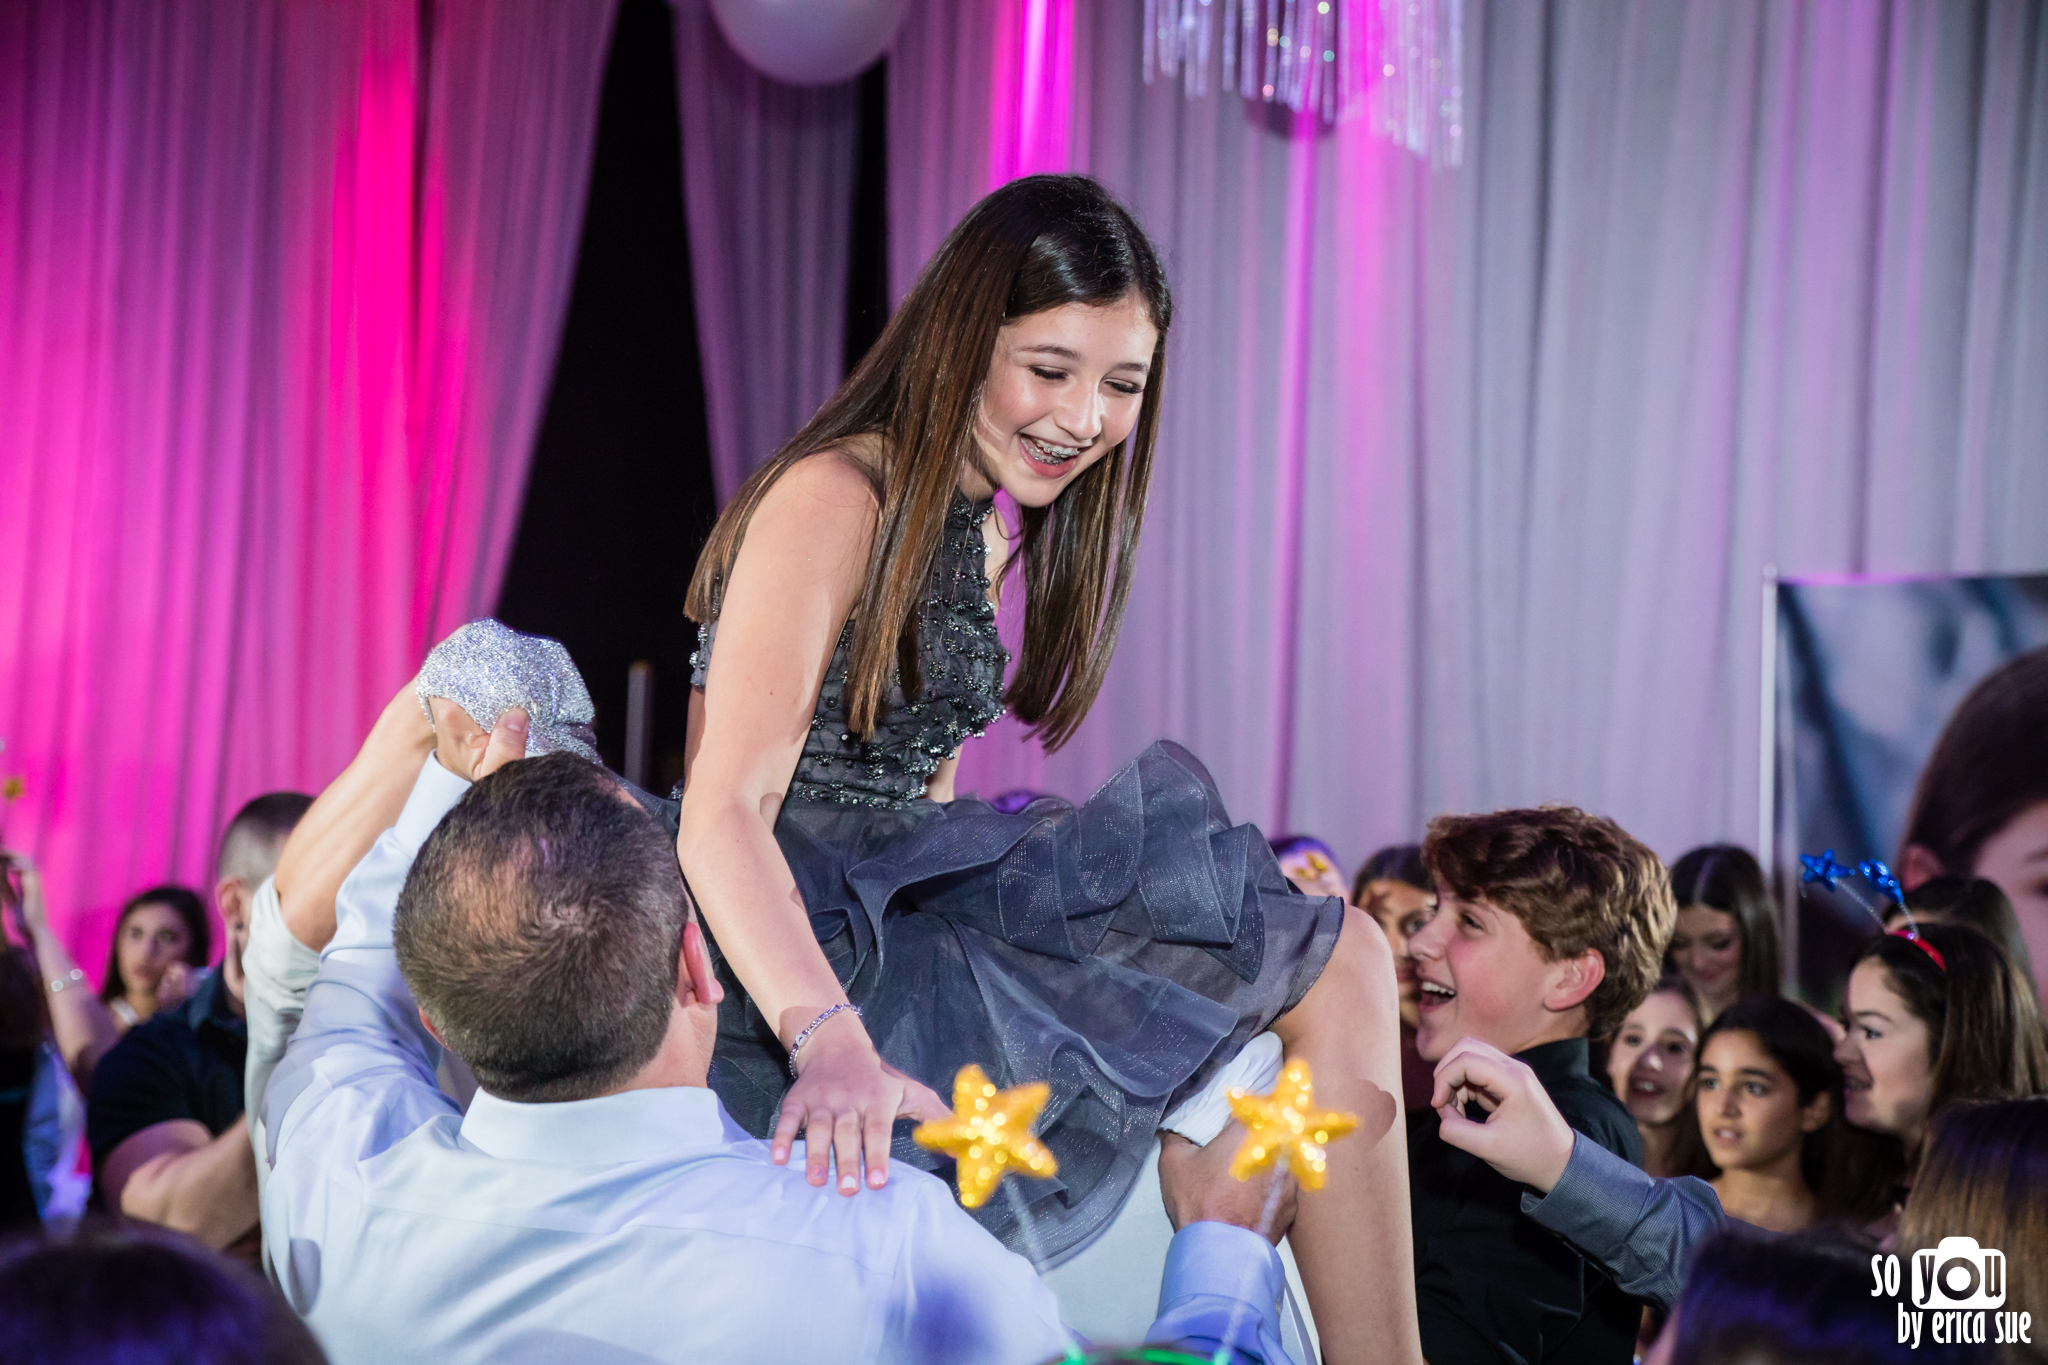 boca-fl-mitzvah-photography-so-you-by-erica-sue-2847.jpg